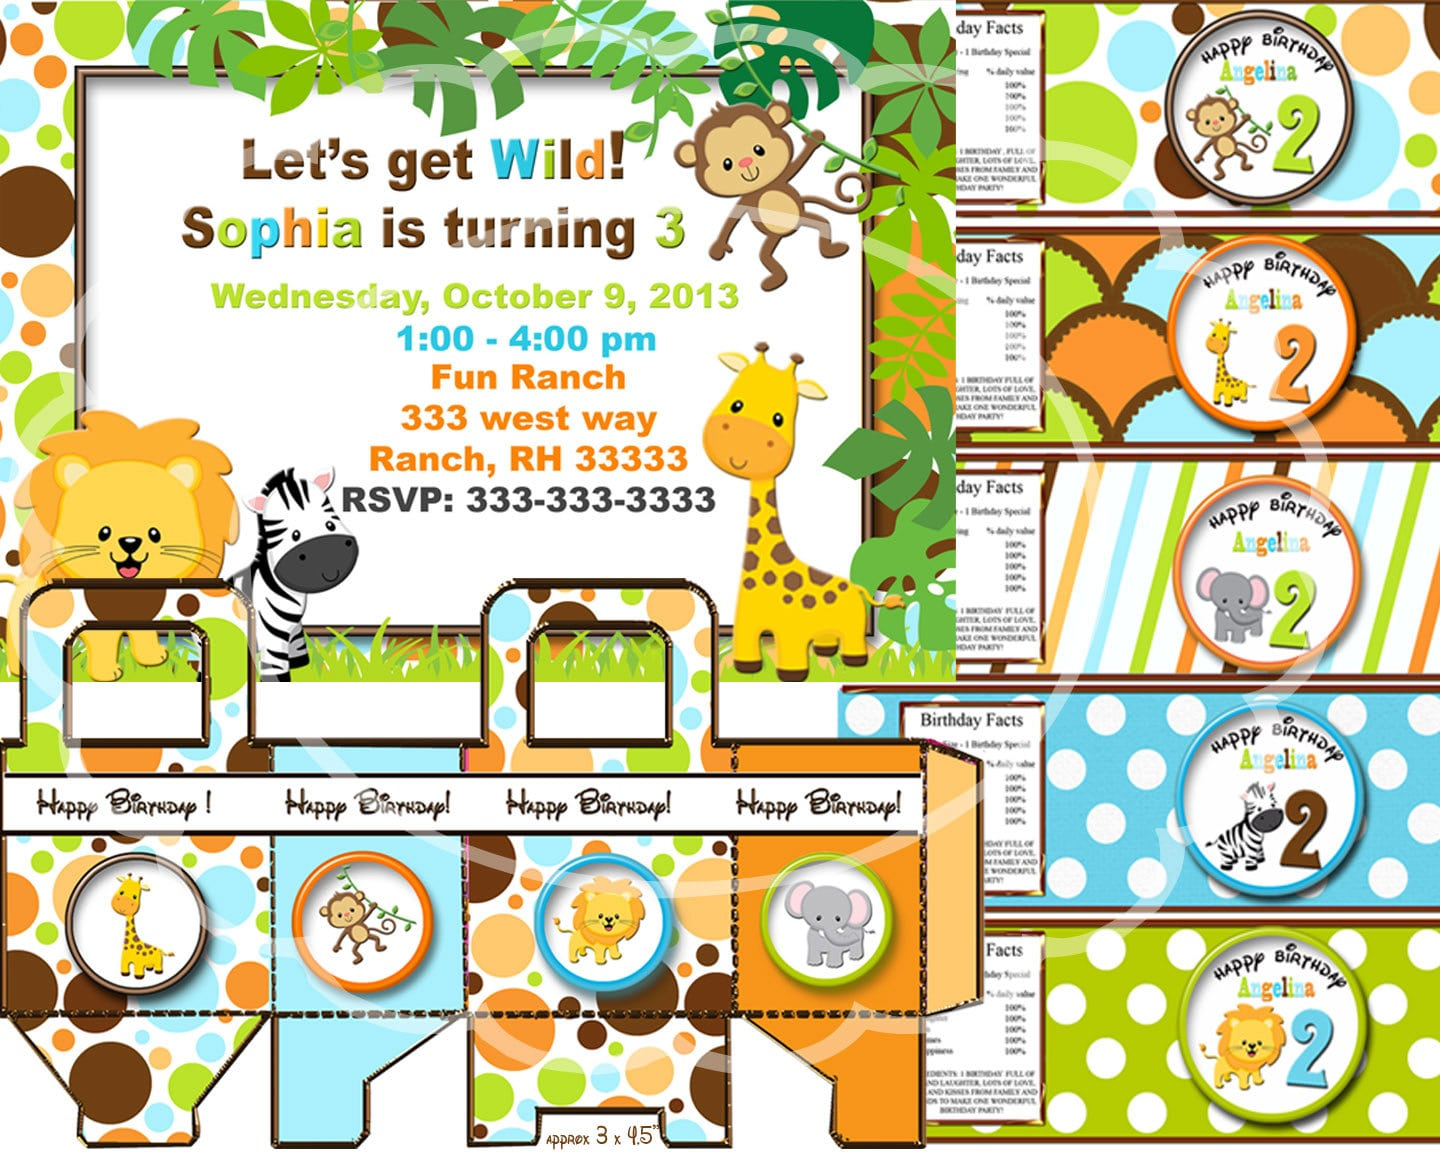 Jungle Themed Birthday Party Invitations is luxury invitations layout